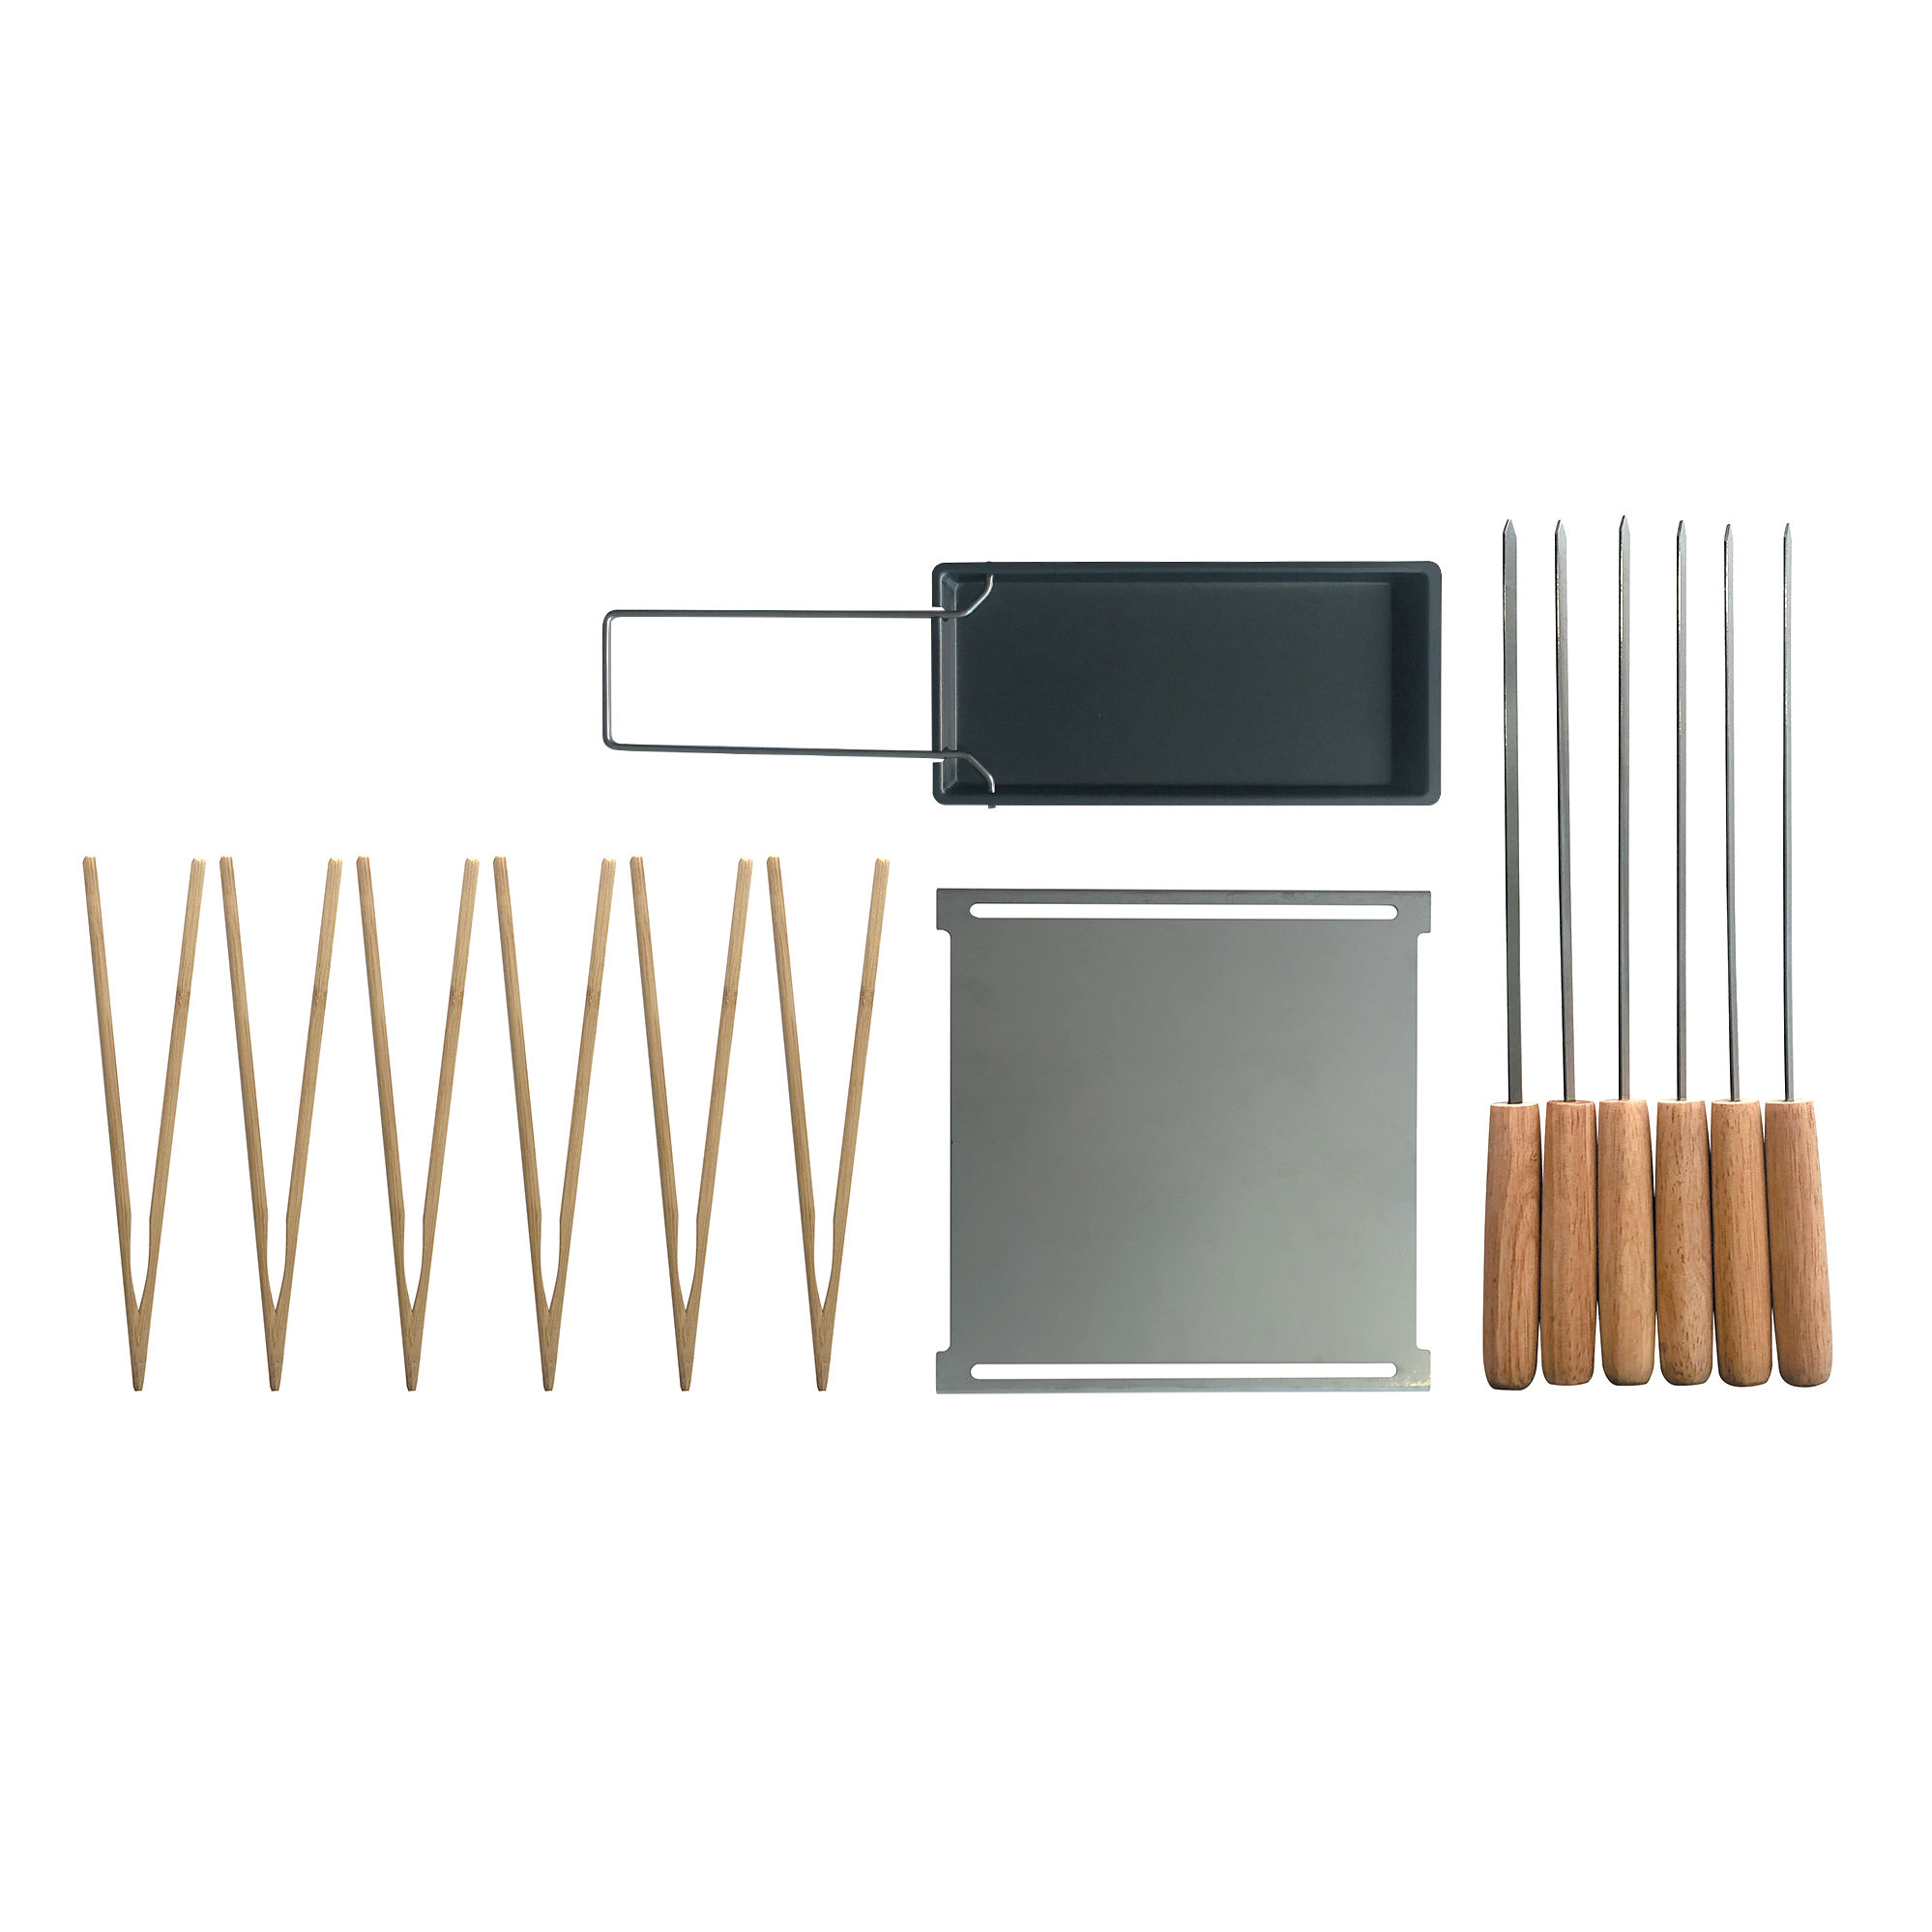 Outdoor - Barbecues & Charcoal Grills - Accessories set - / For Yaki barbecue - Plancha, raclette pan, skewers, tongs by Cookut - Bamboo & steel - Stainless steel, Wood